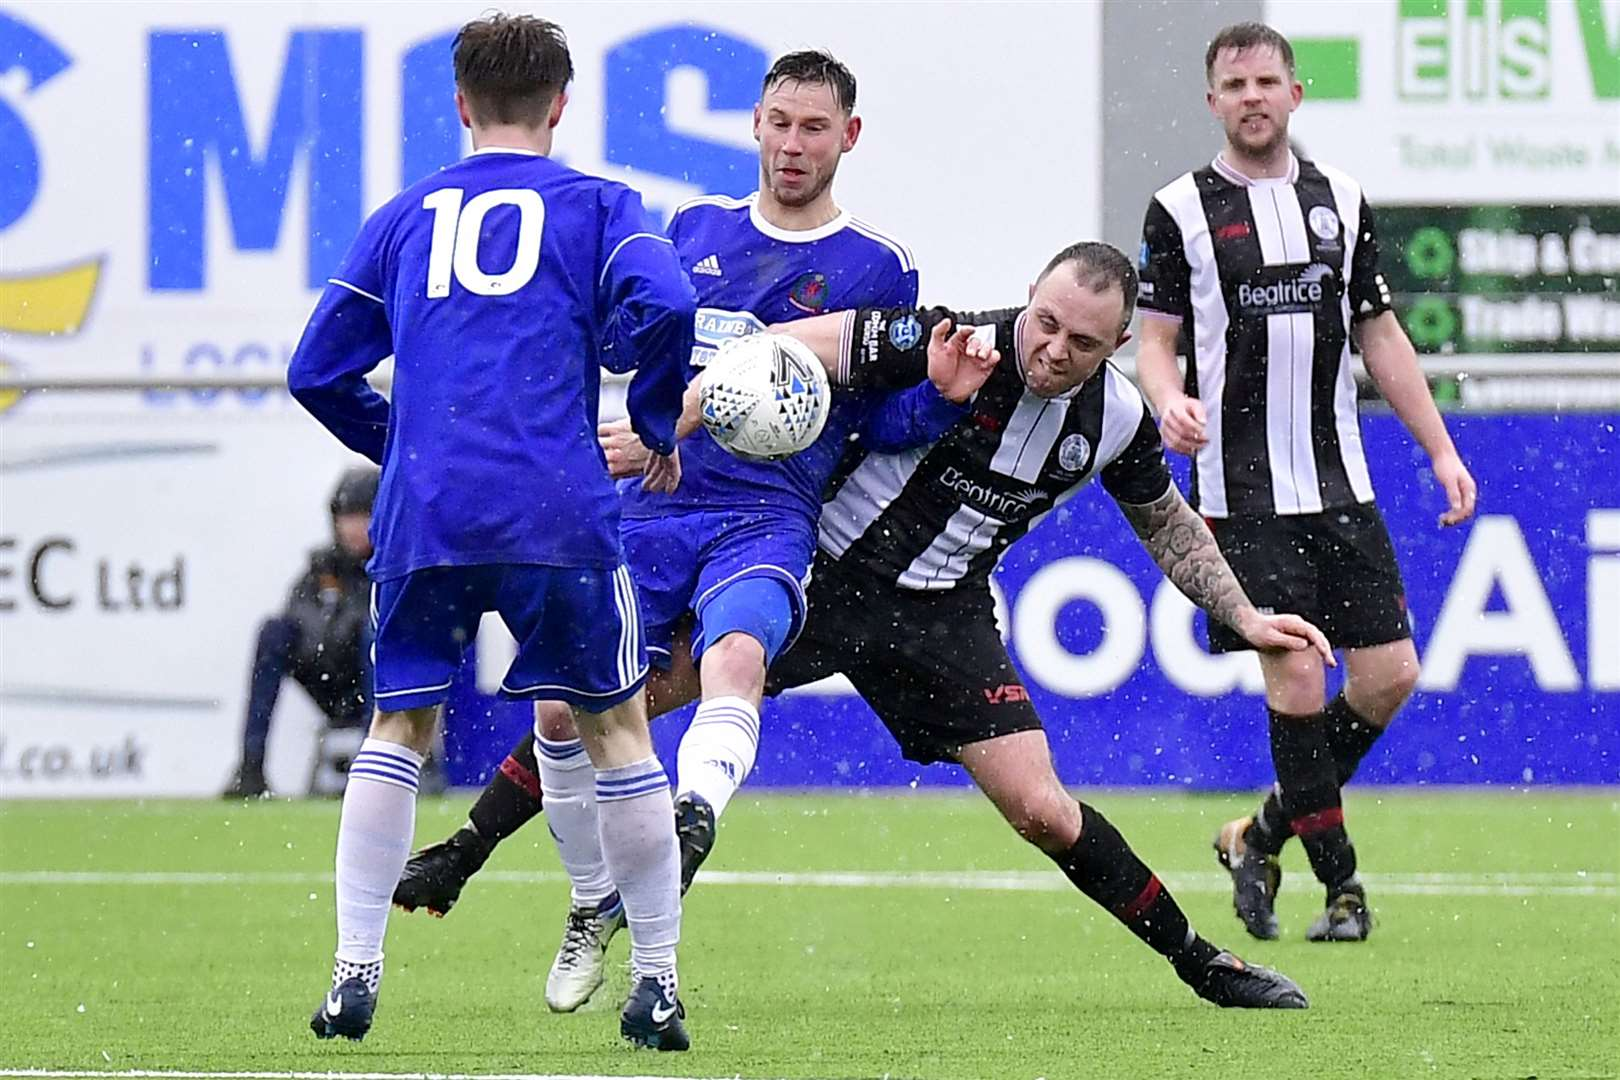 Wick Academy's Danny Mackay tussles with Cove striker Mitch Megginson during last season's semi-final at Balmoral Stadium. Picture: Mel Roger